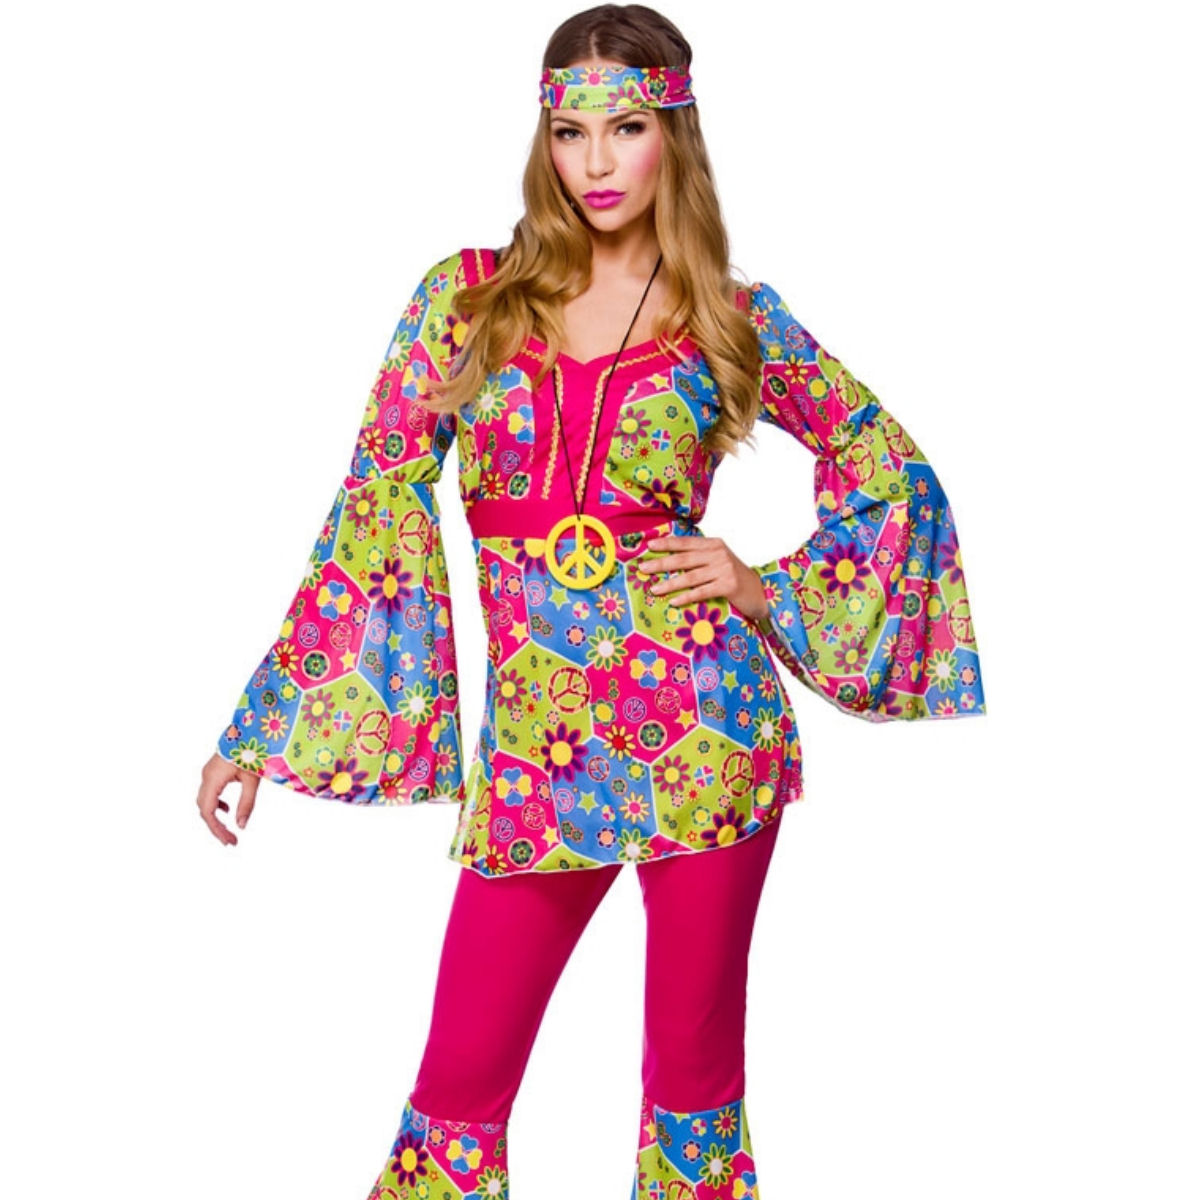 exceptional 70s hippies outfits clothing